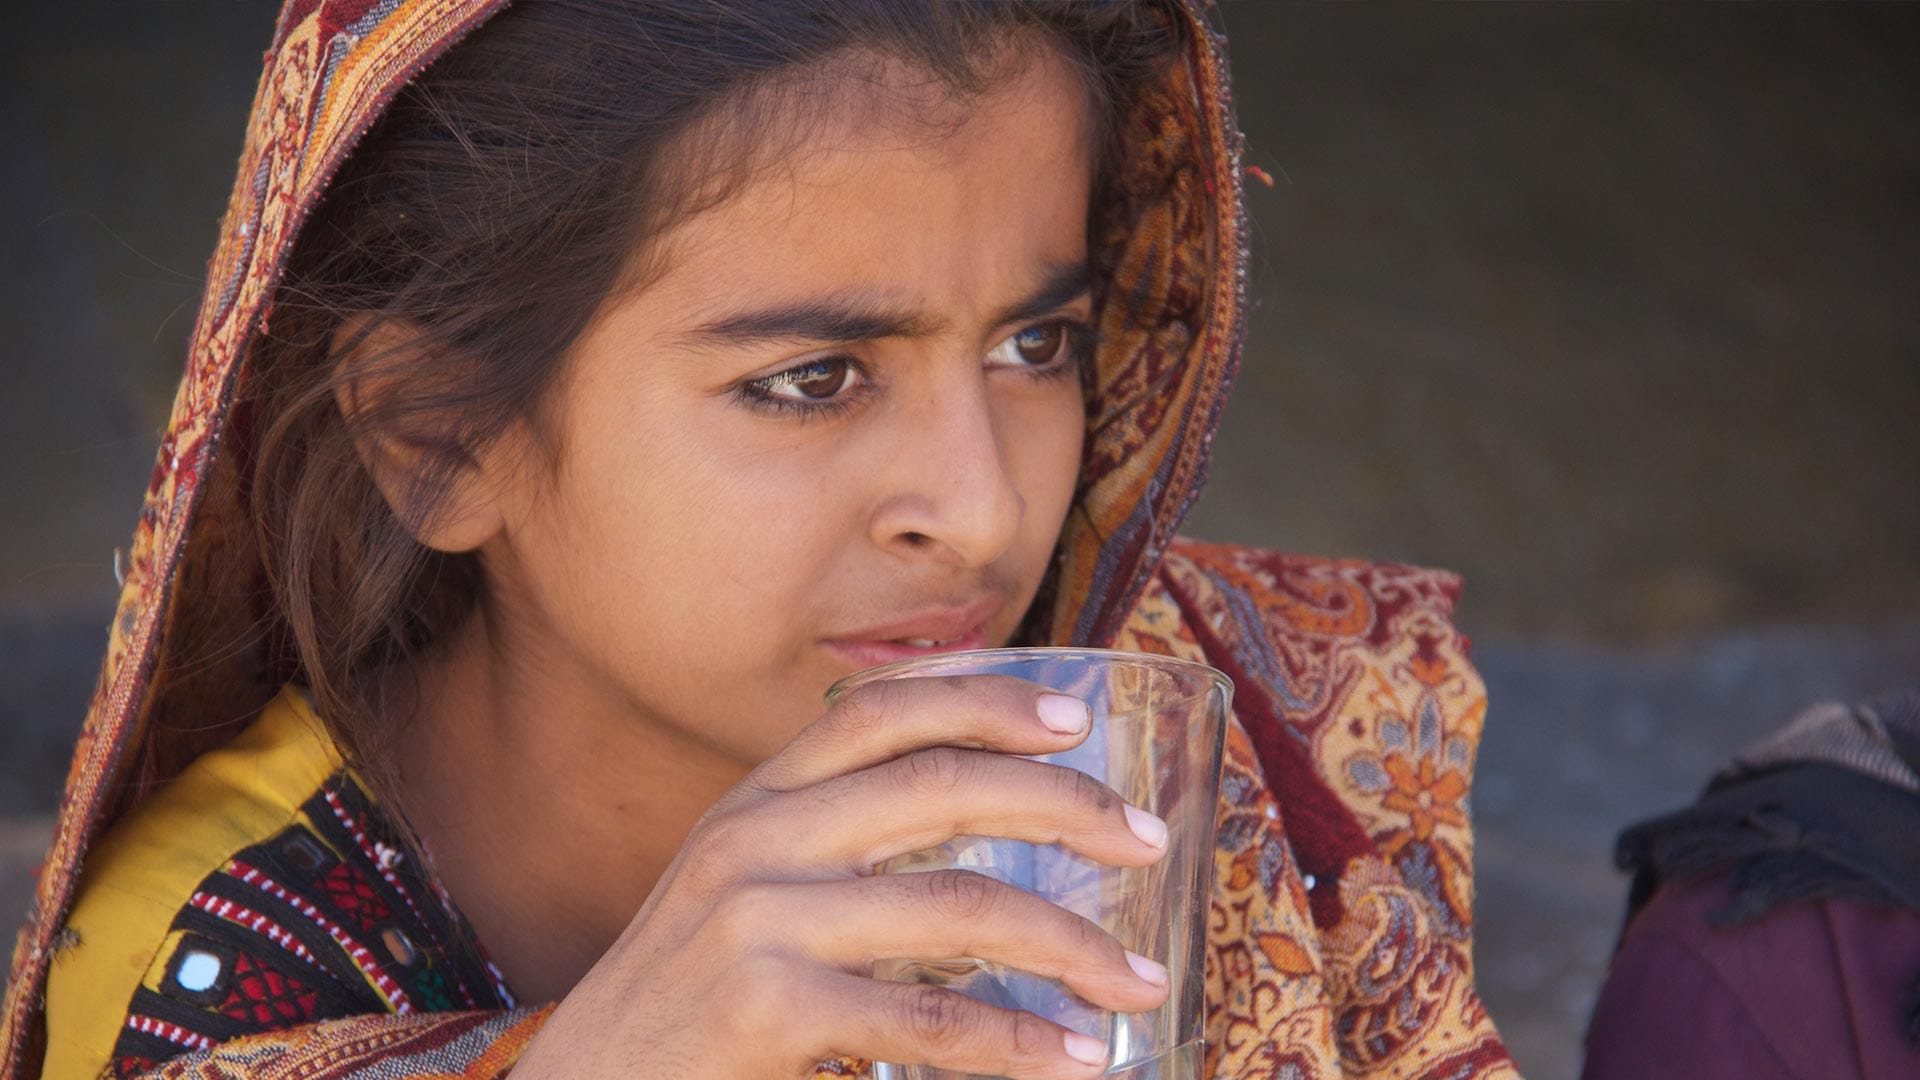 A Pakistani girl holding a glass of water